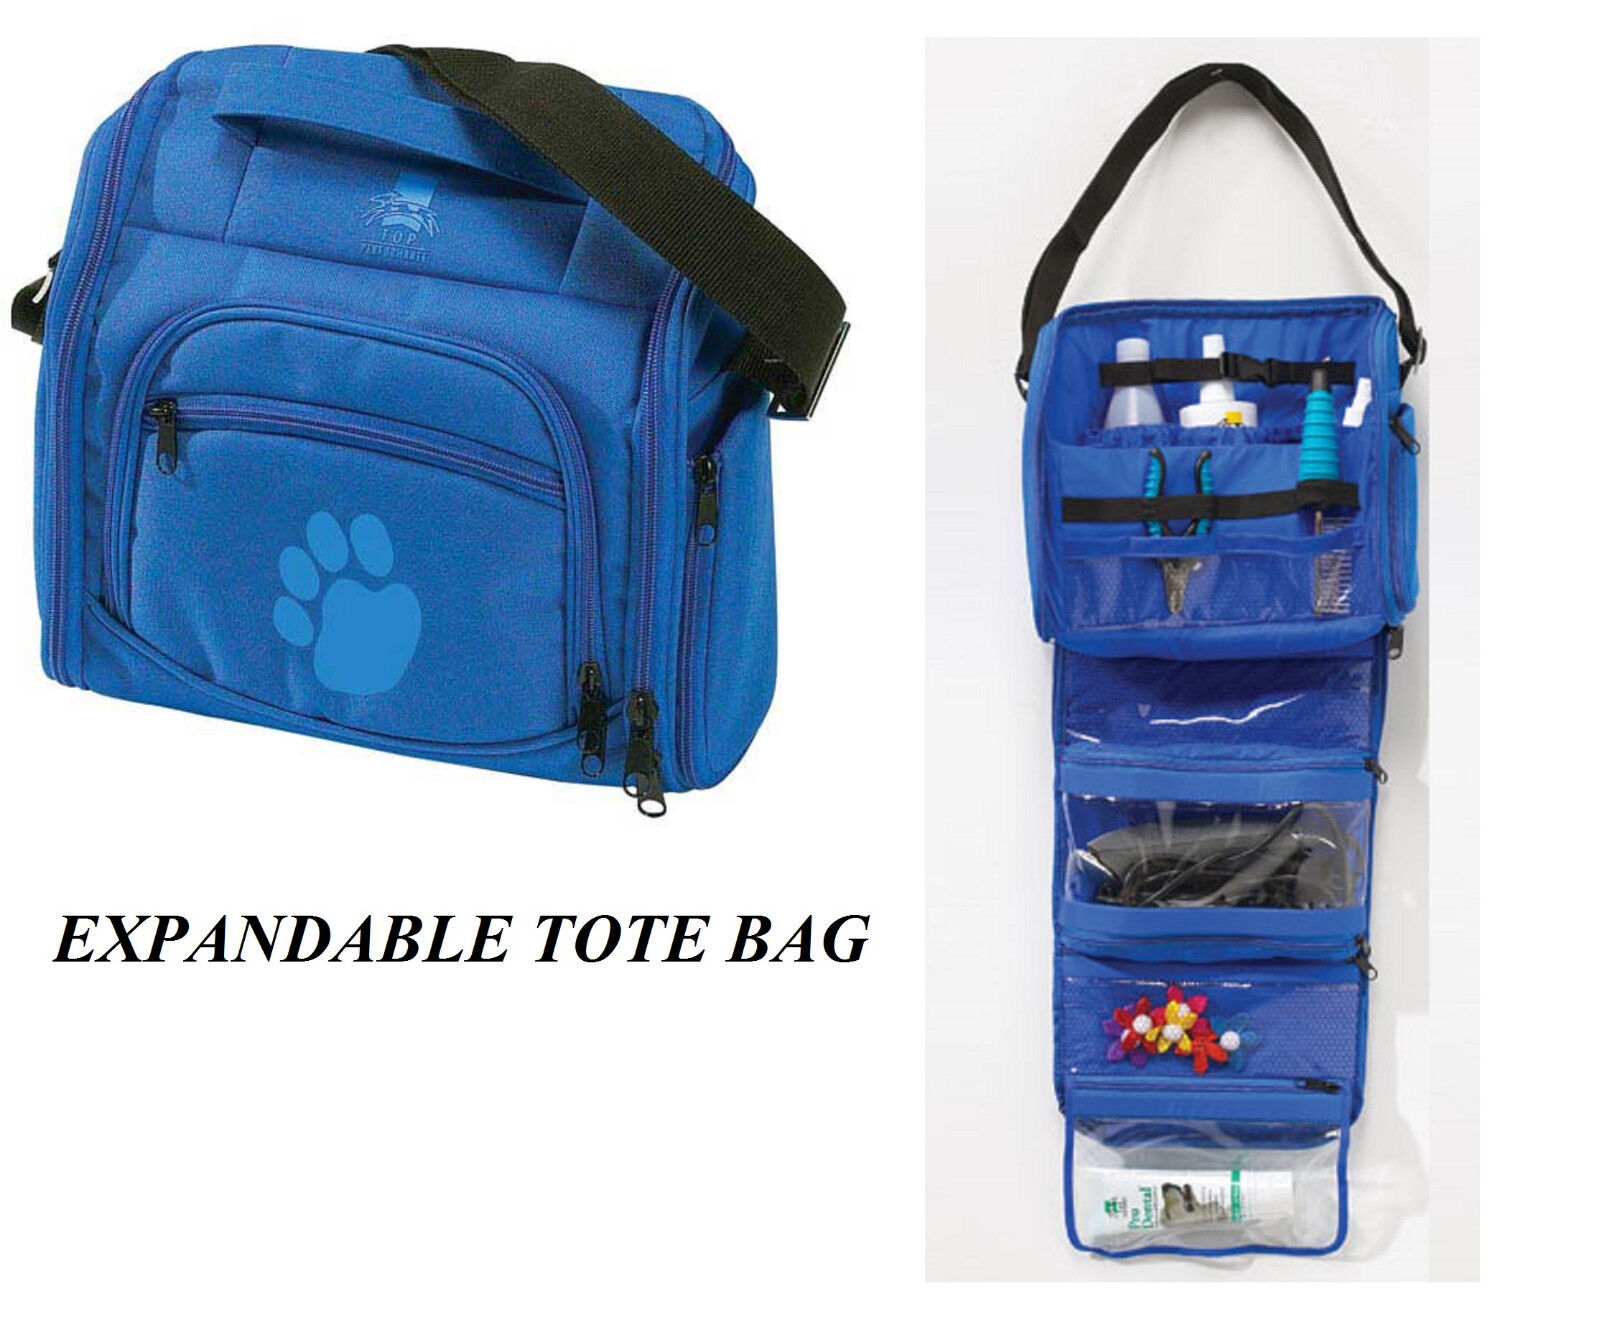 Top Performance On the Go BAG Travel Storage Tool Case Tote MULTI-USEEXPANDS B